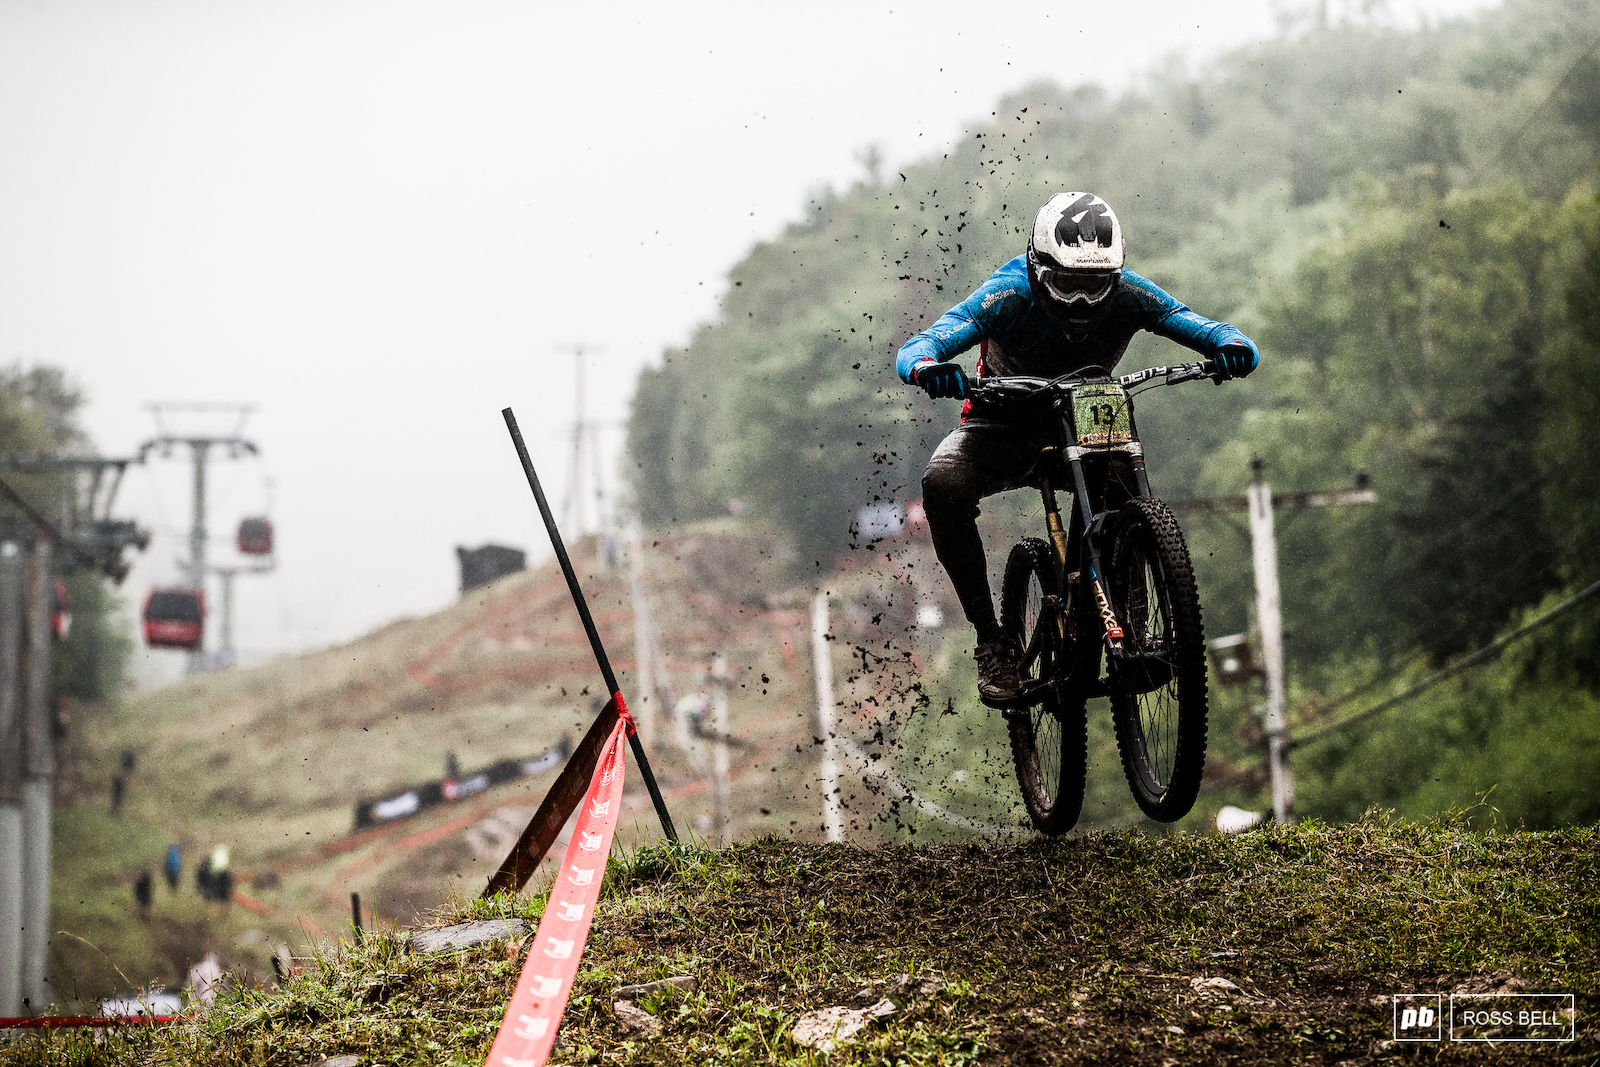 Elliot Jamieson podium-ed last year at World Champs and will want to repeat that success this time on home soil.